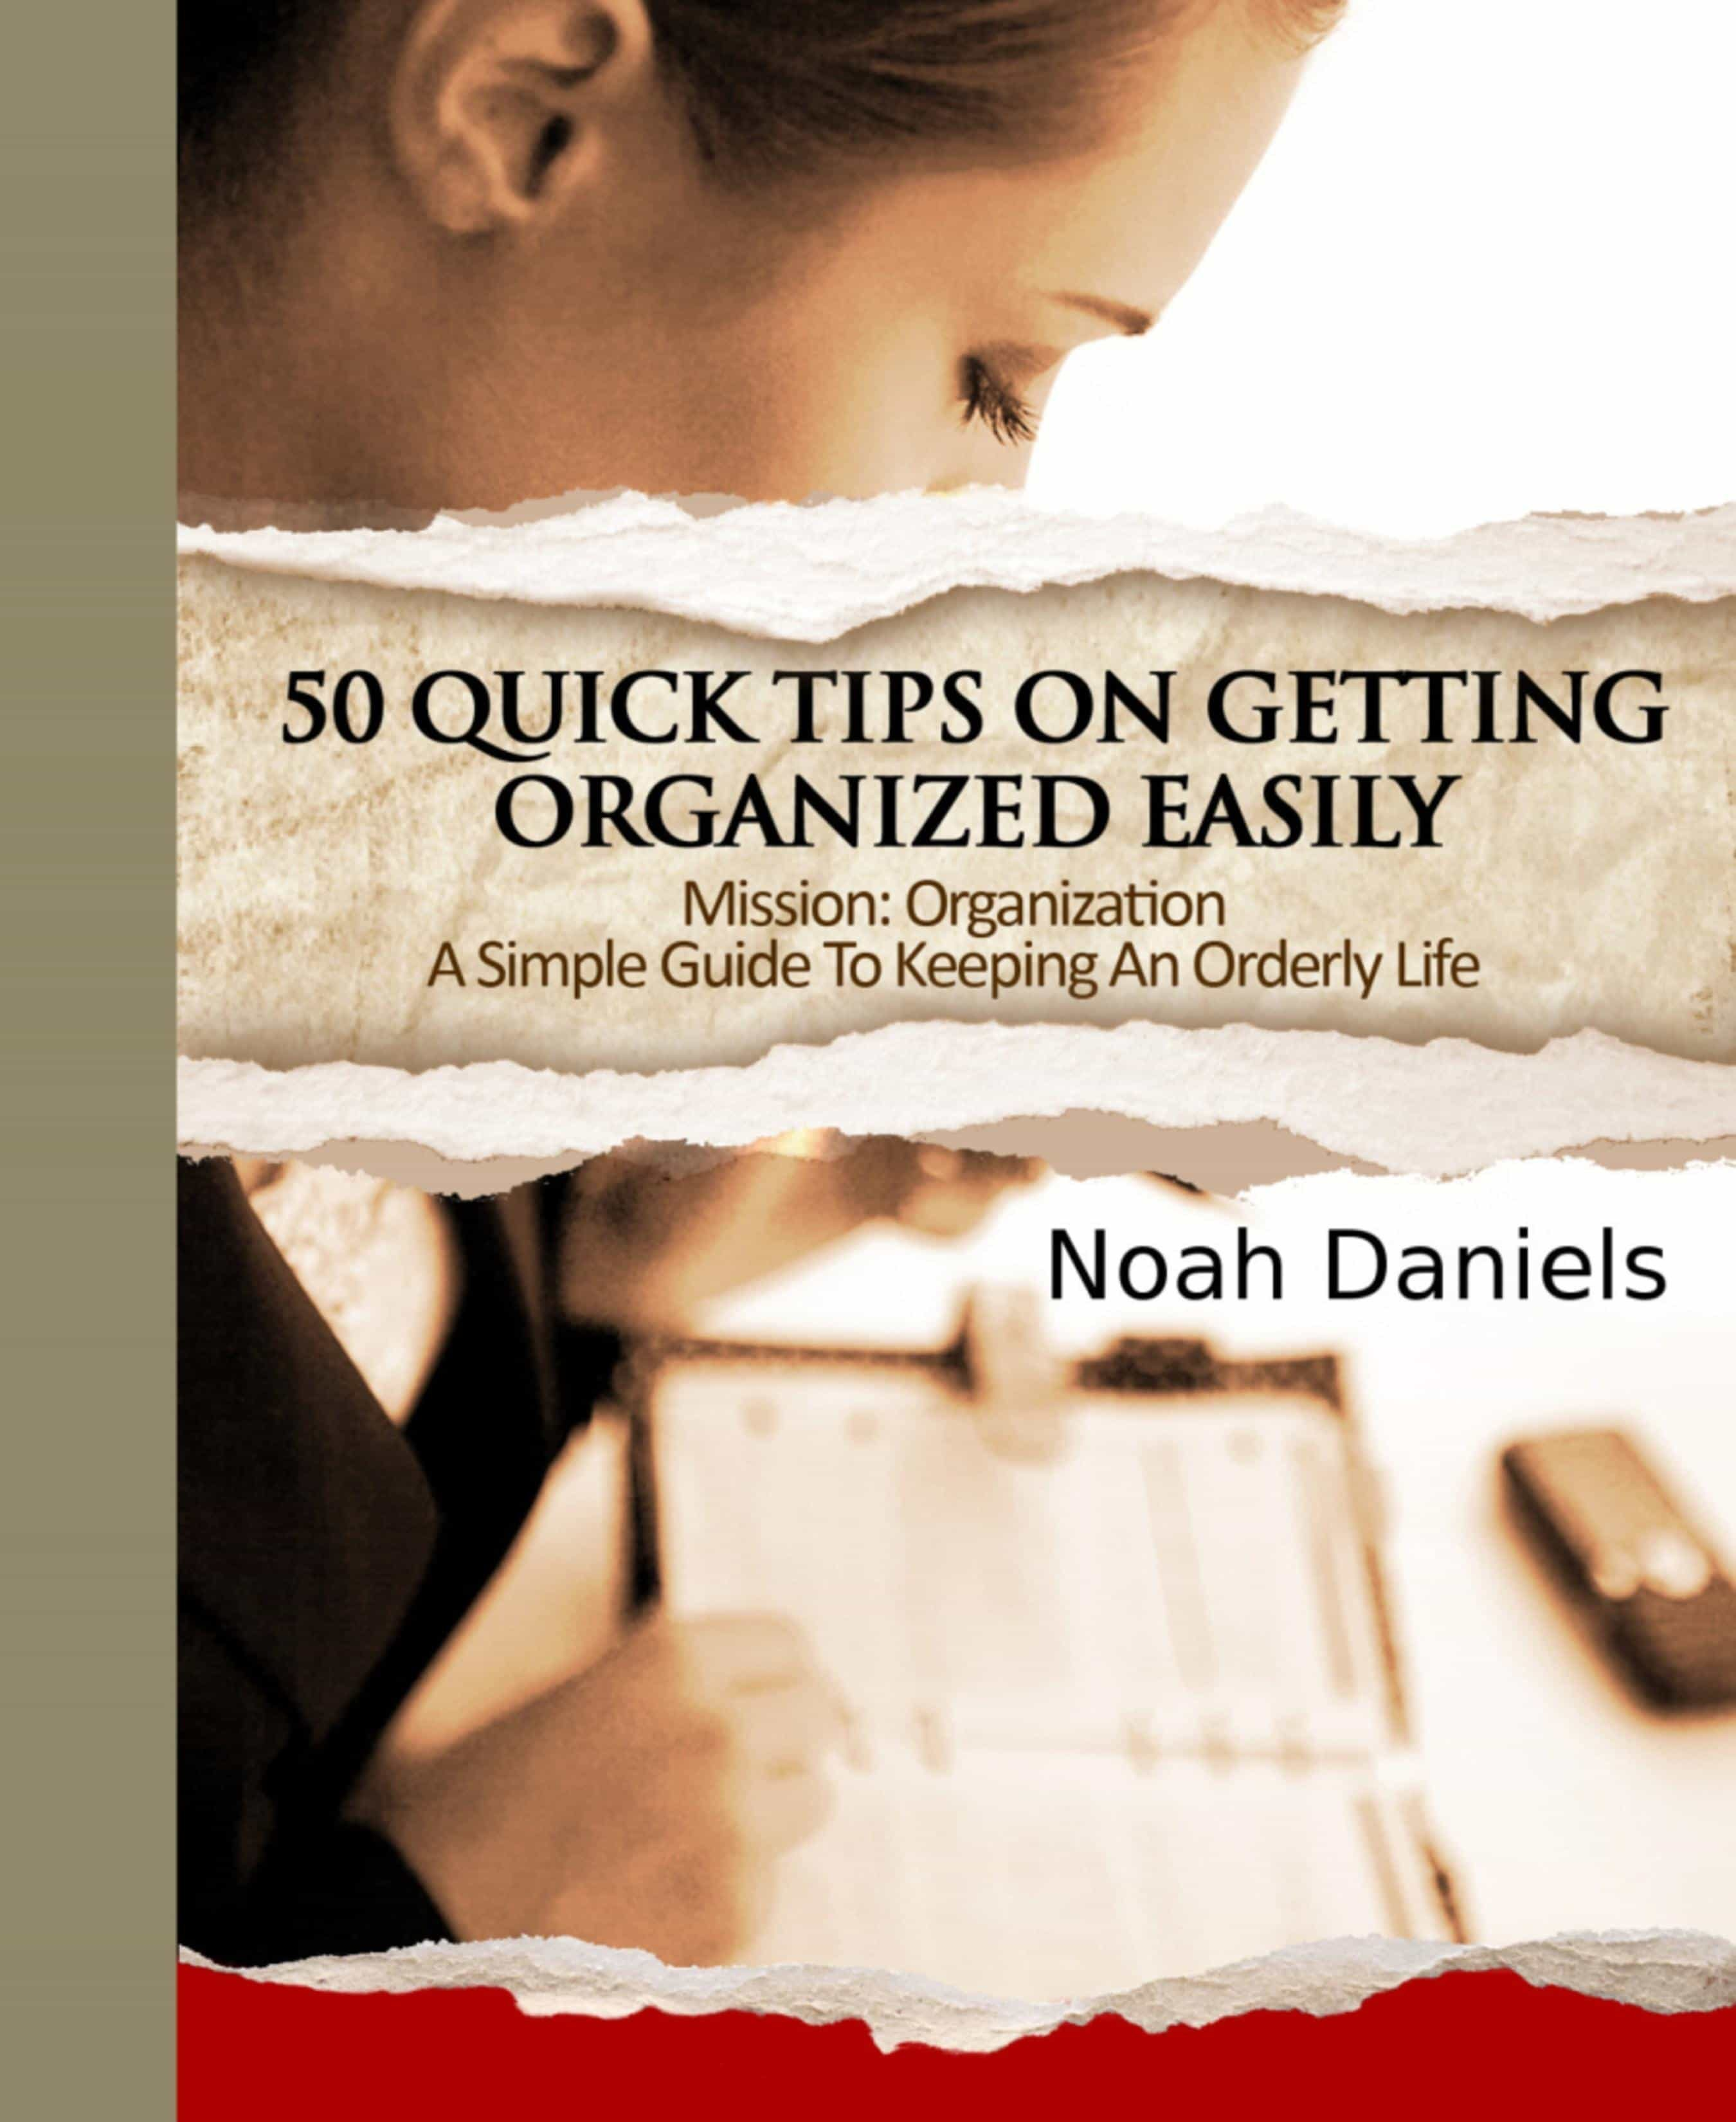 MISSION: ORGANIZATION - A SIMPLE GUIDE TO KEEPING AN ORDERLY LIFE